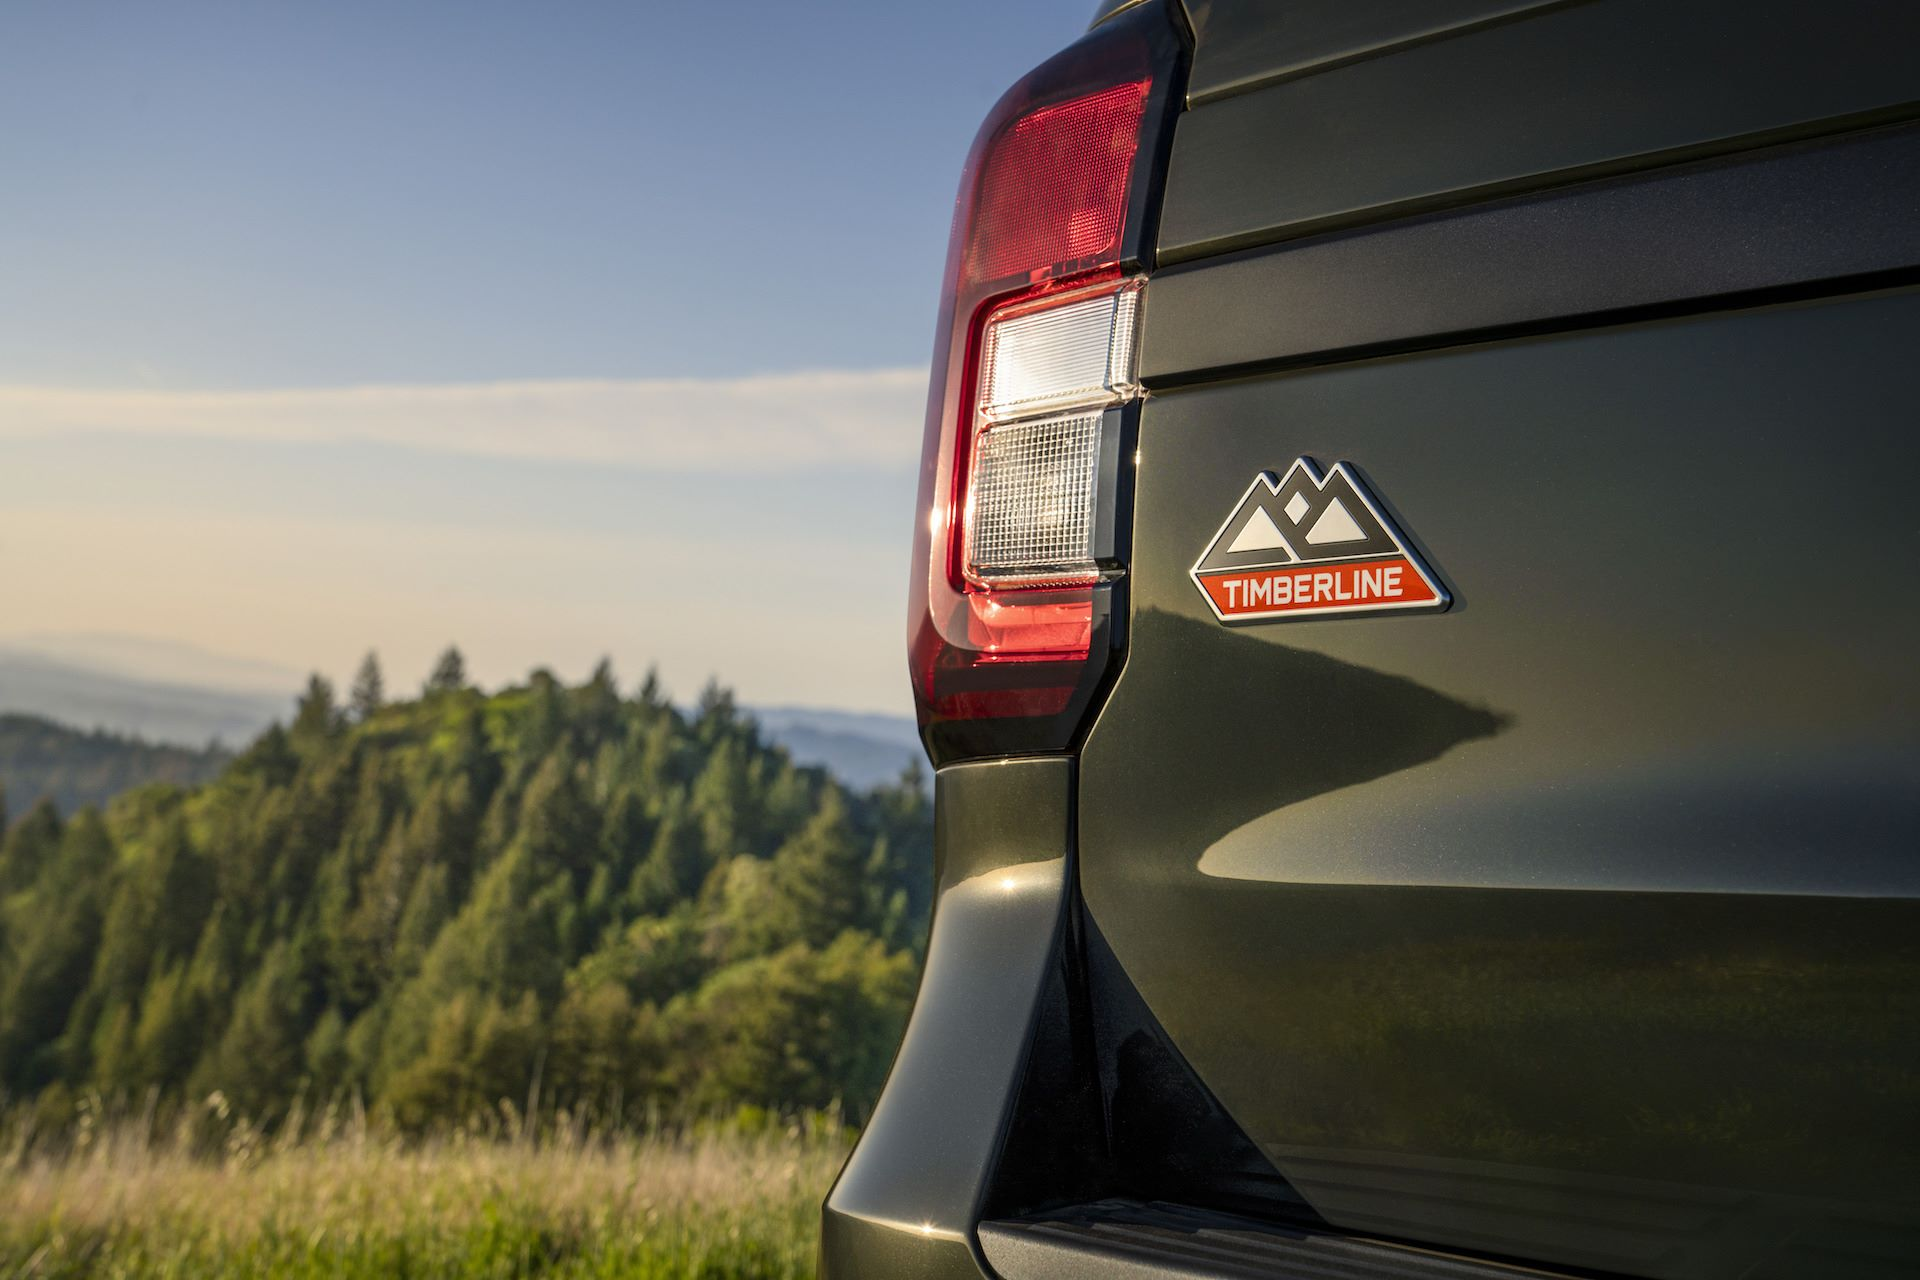 2022-Ford-Expedition-Timberline-00013-1